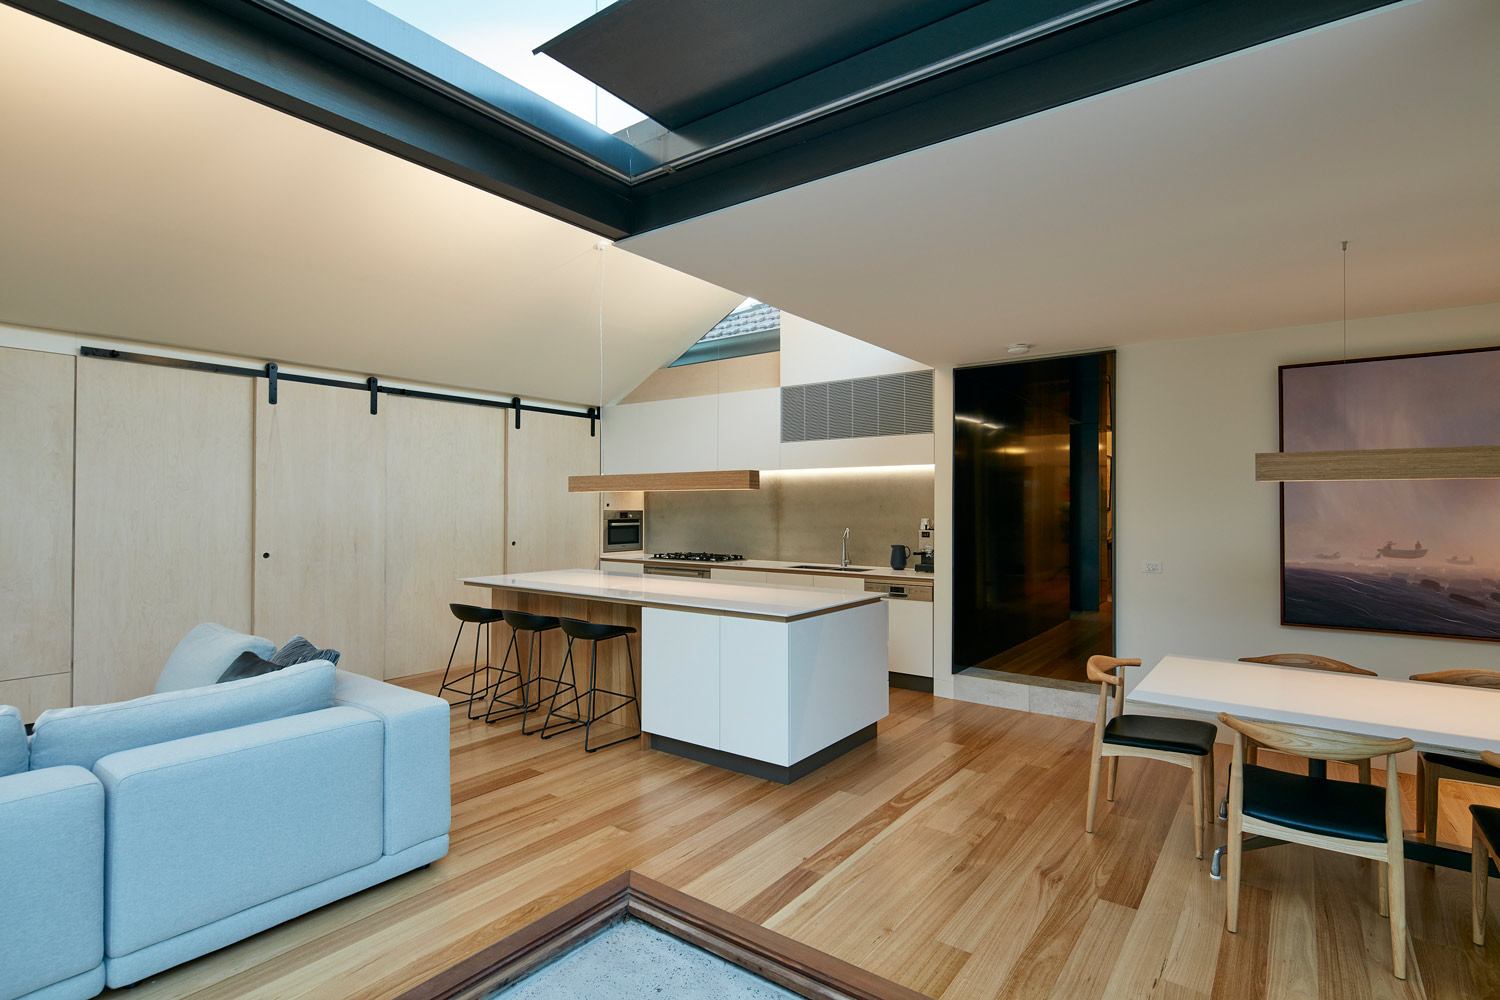 brighton-courtyard-house-renovation-by-warc-studio-02.jpg